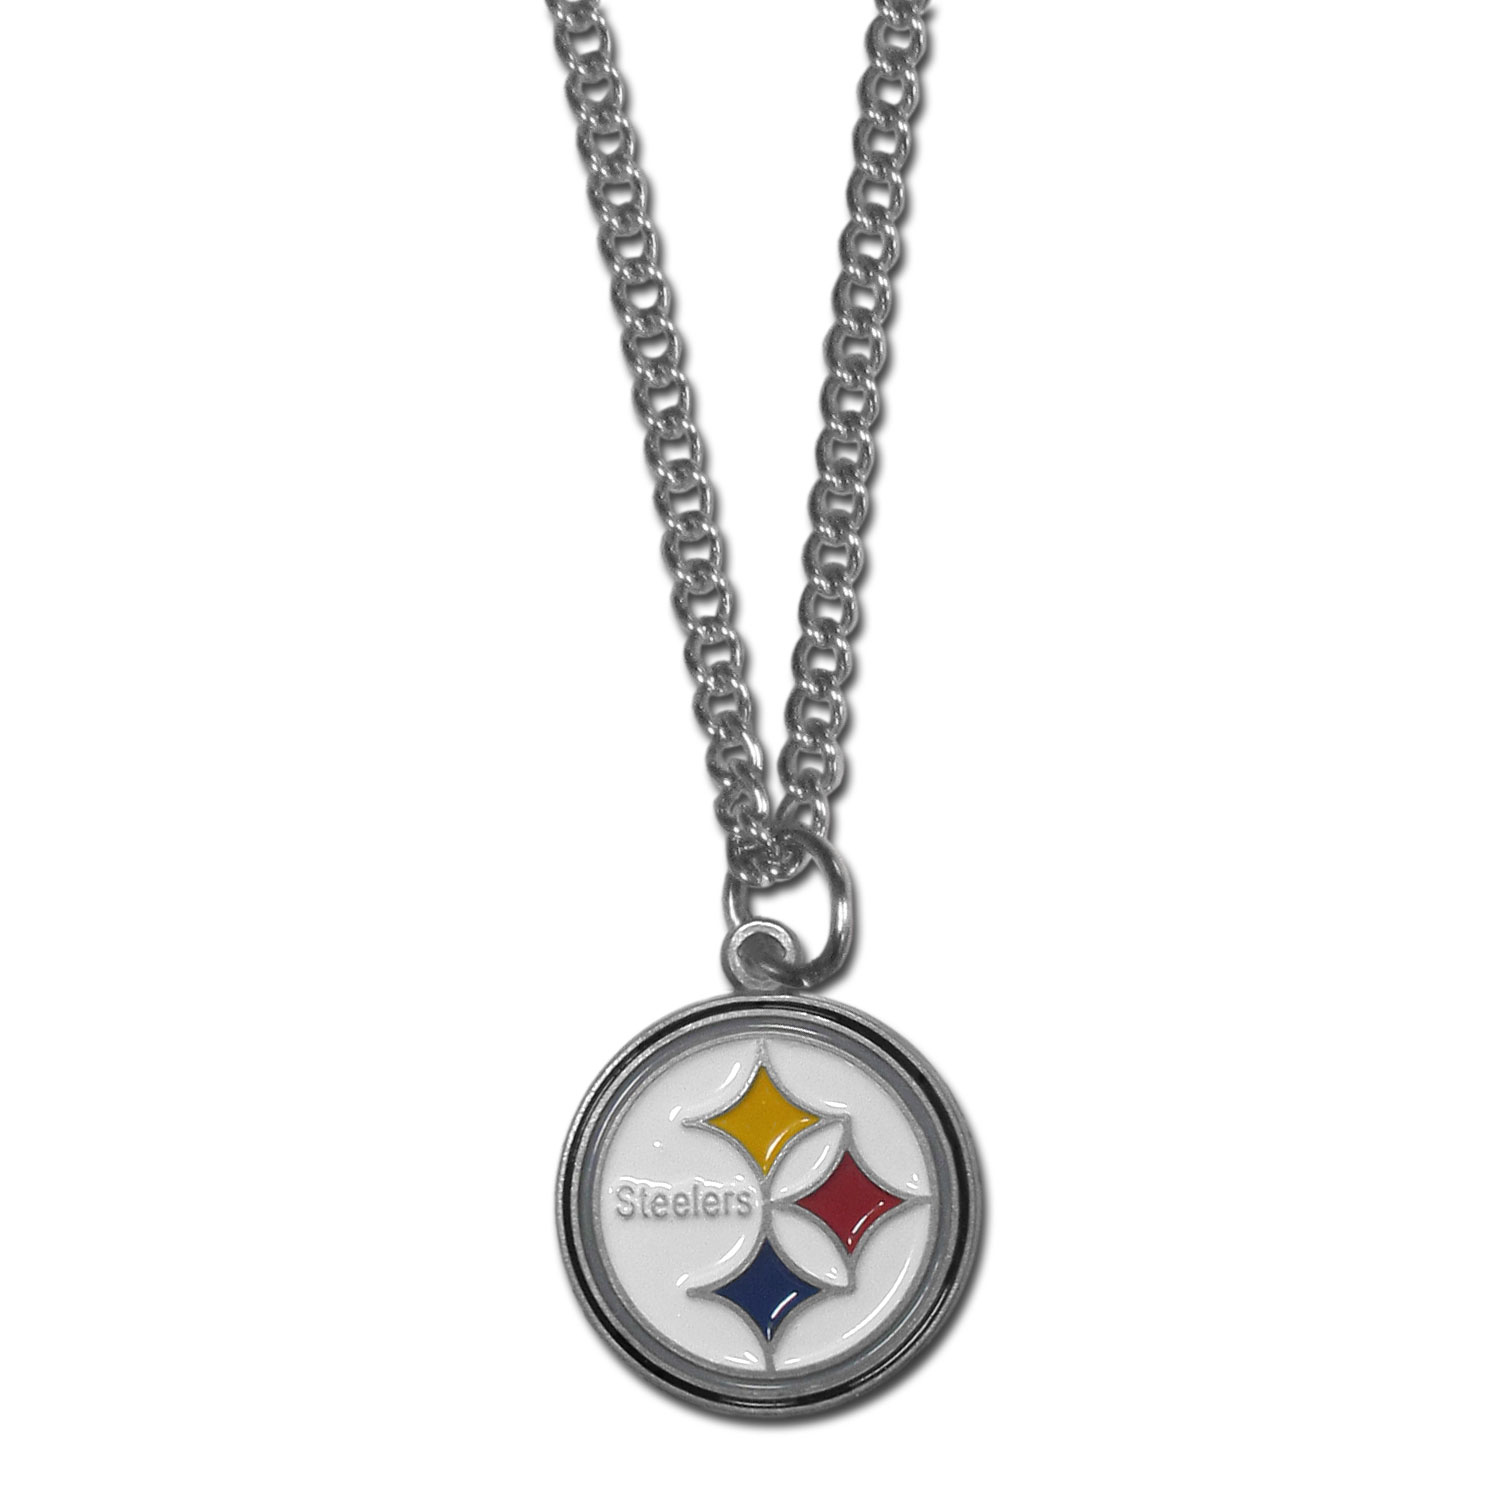 Pittsburgh Steelers Chain Necklace - Make a statement with our chain necklaces. The 22 inch chain features a fully cast, metal Pittsburgh Steelers pendant with vivid enameled details. Perfect accessory for game day and nice enough to wear everyday!